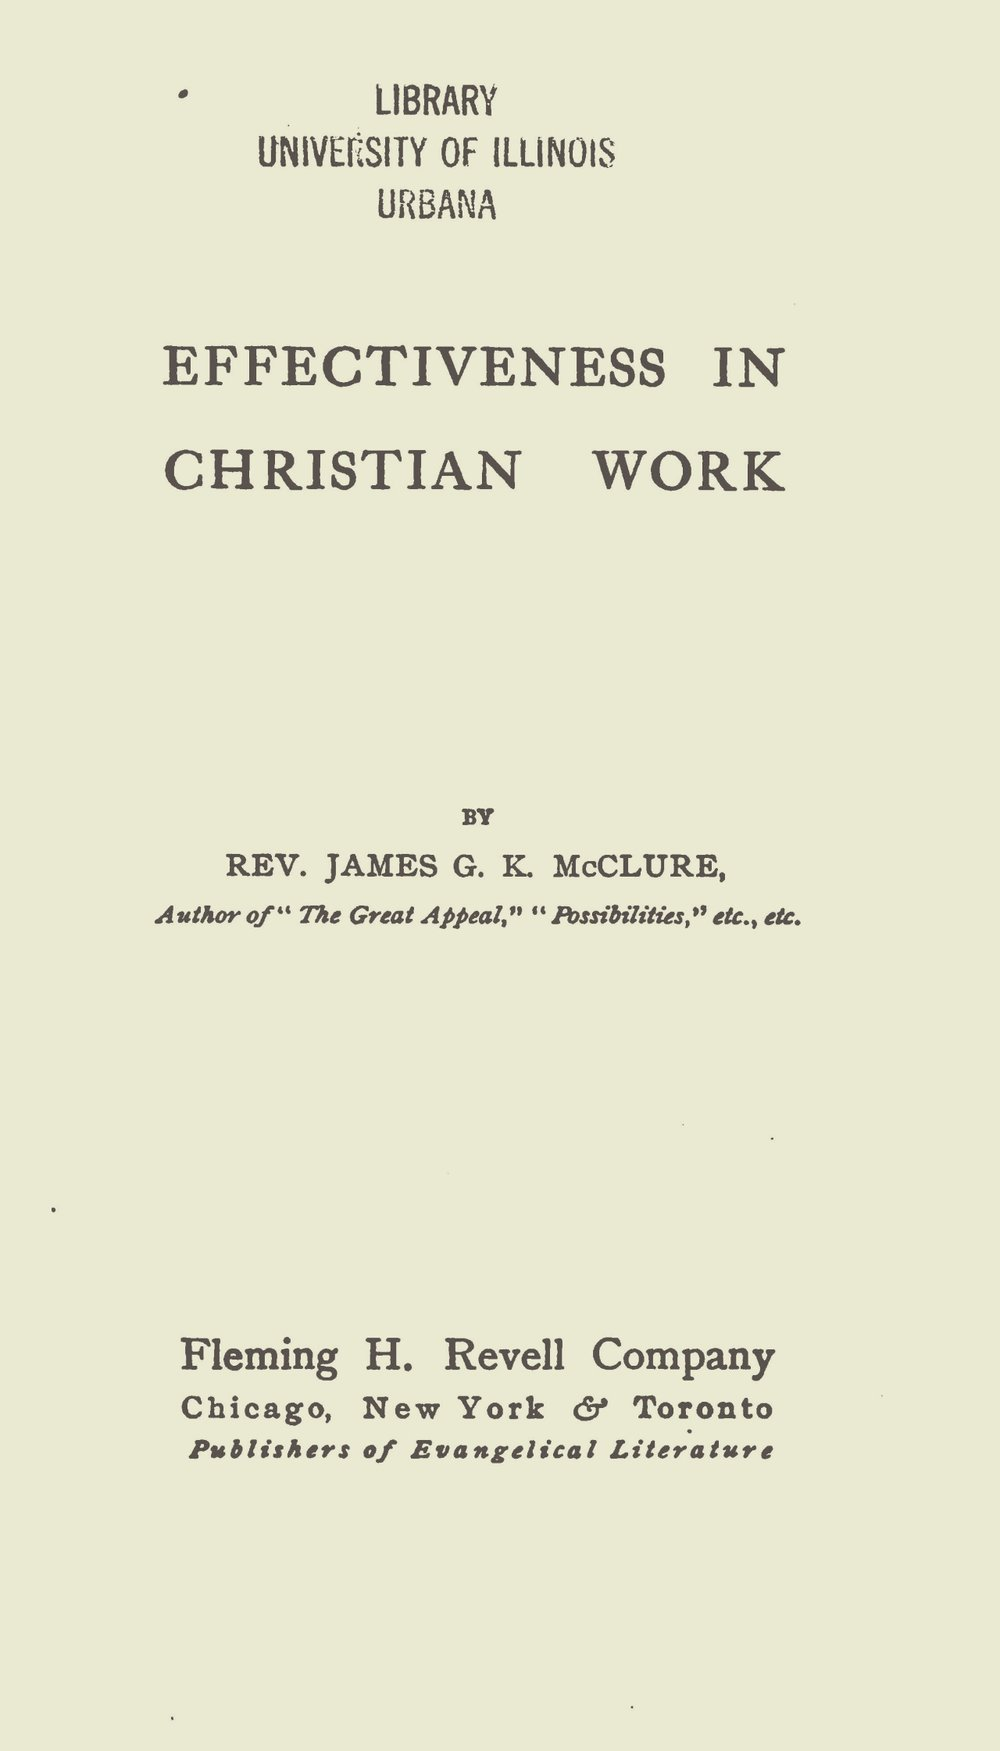 McClure, Sr., James Gore King, Effectiveness in Christian Work Title Page.jpg